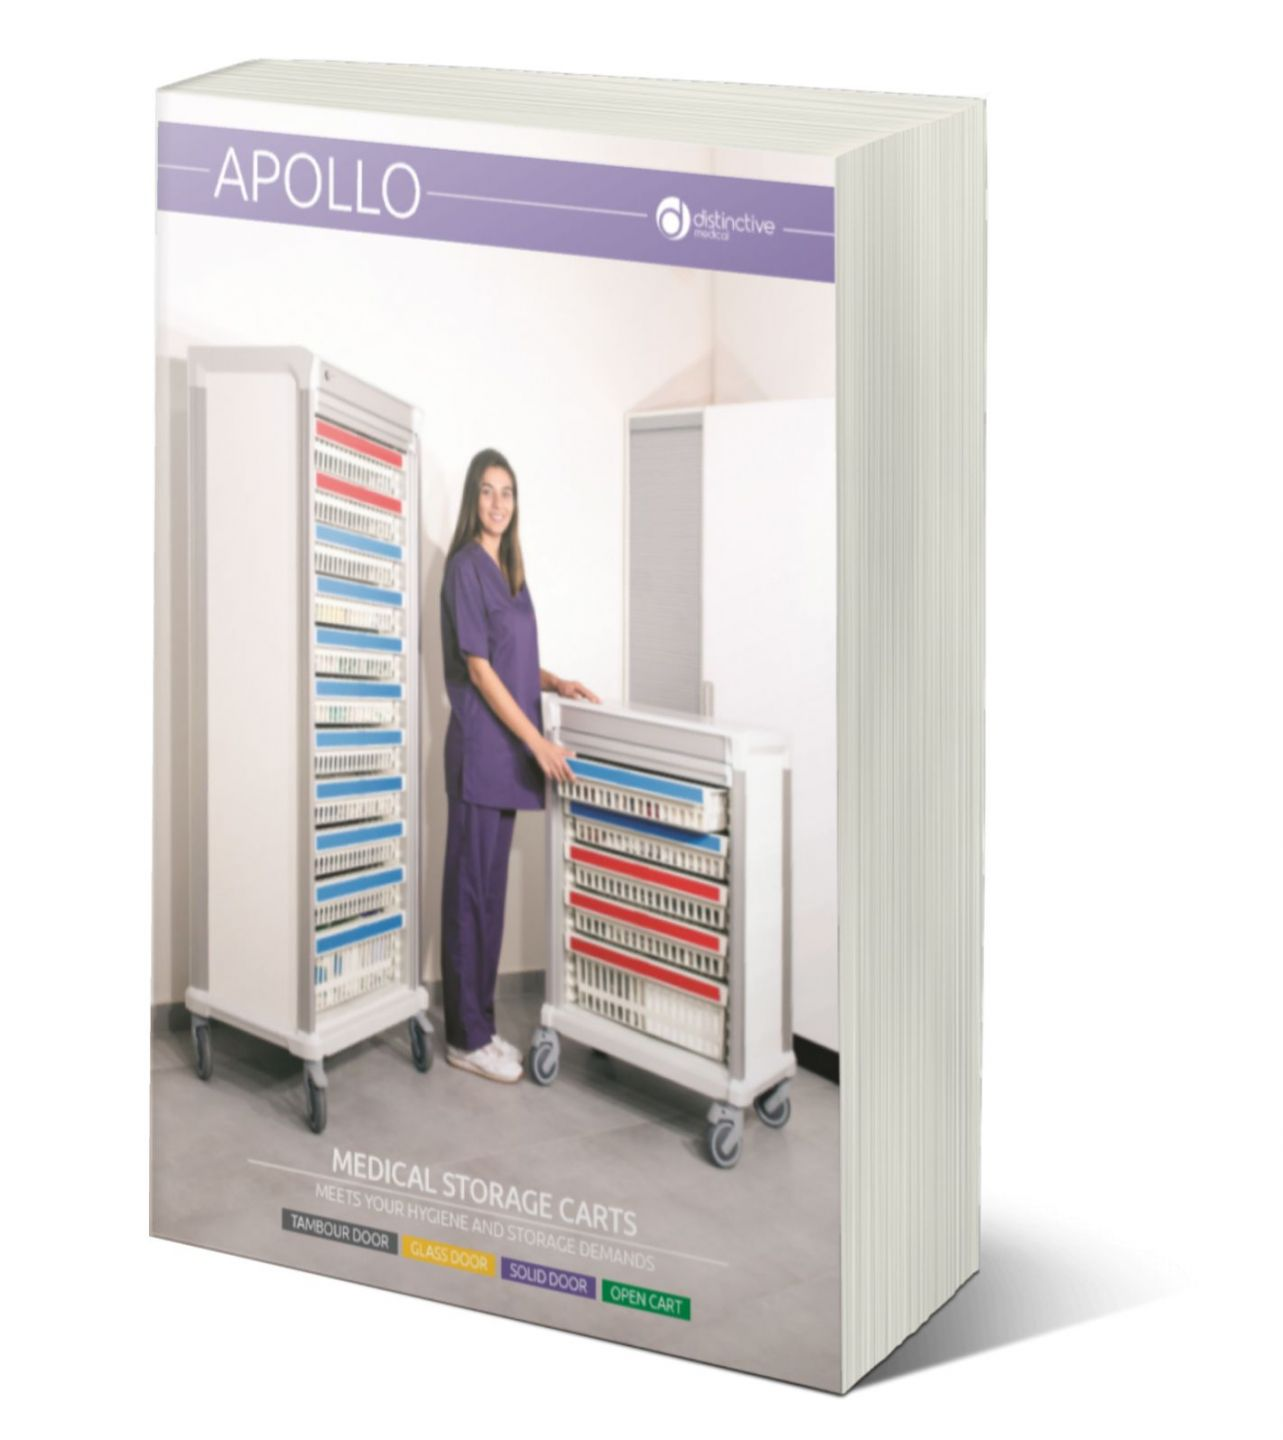 apollo medical storage carts brochure cover